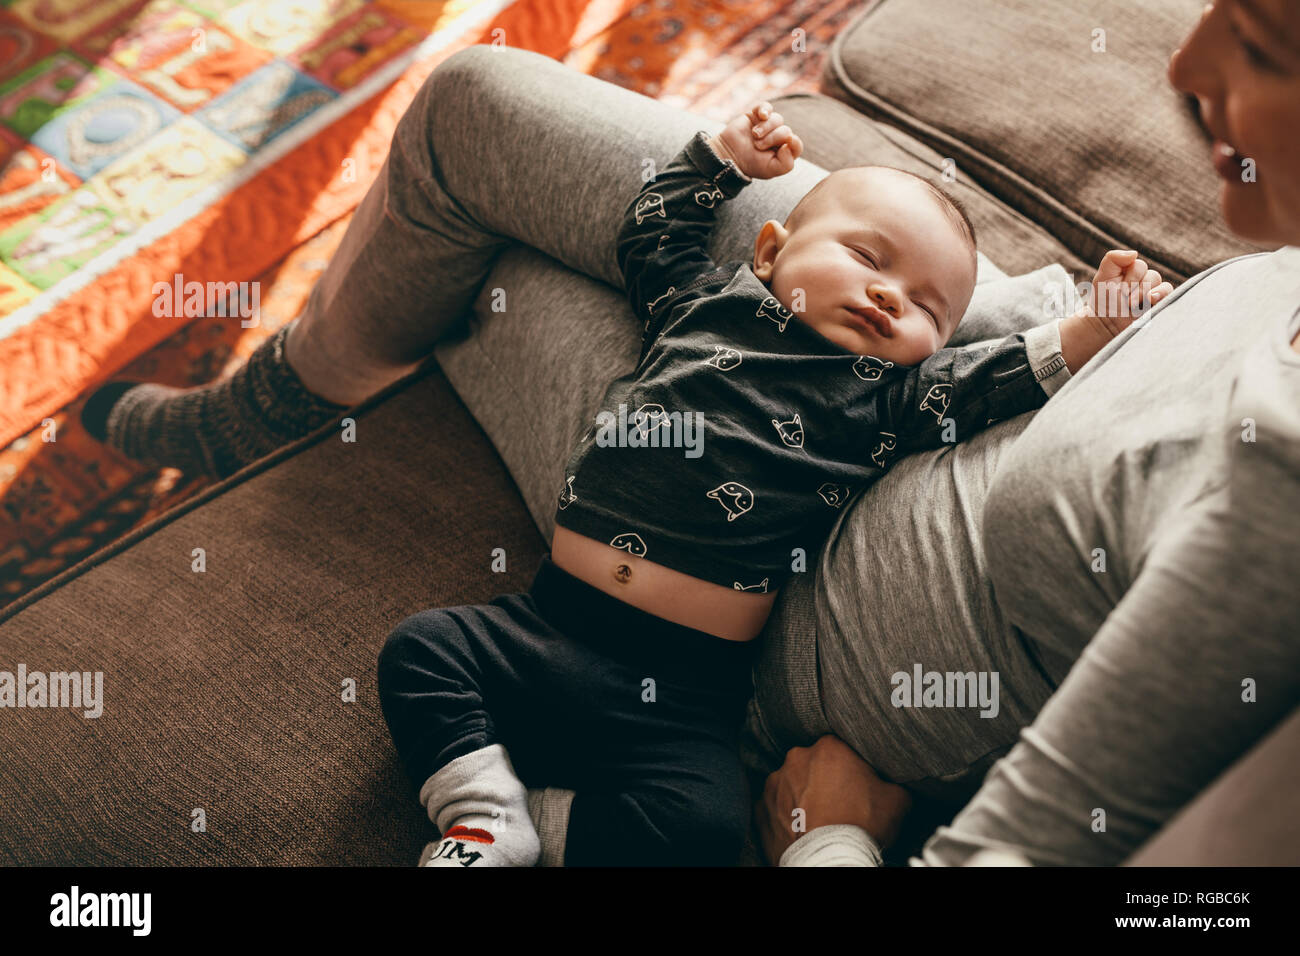 Baby in a deep sleep in the lap of his mother at home. Mother sitting on couch with her baby sleeping in her lap. - Stock Image